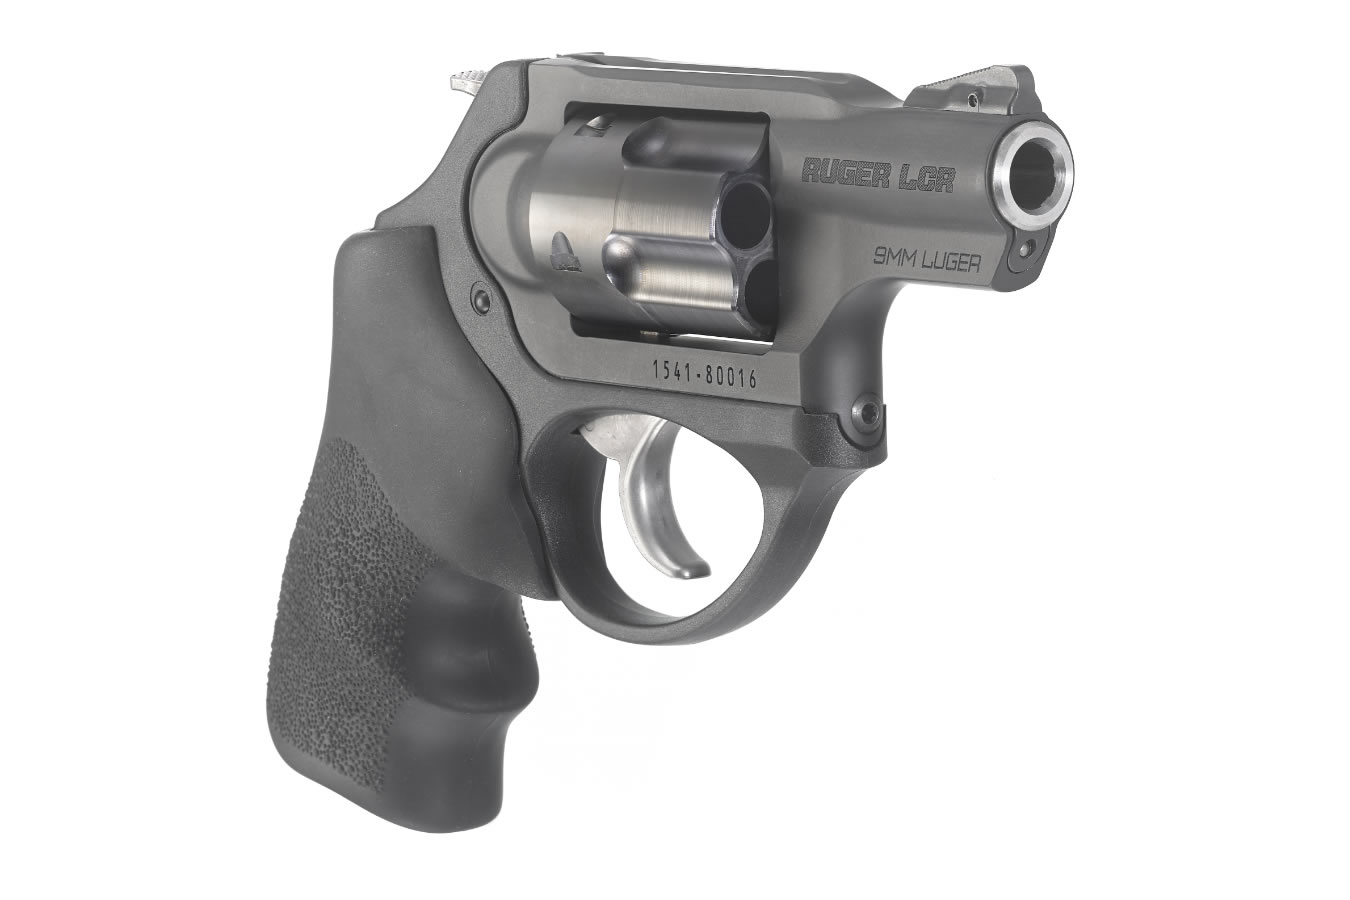 RUGER LCRX 9MM REVOLVER W/ 1.87-INCH BARREL